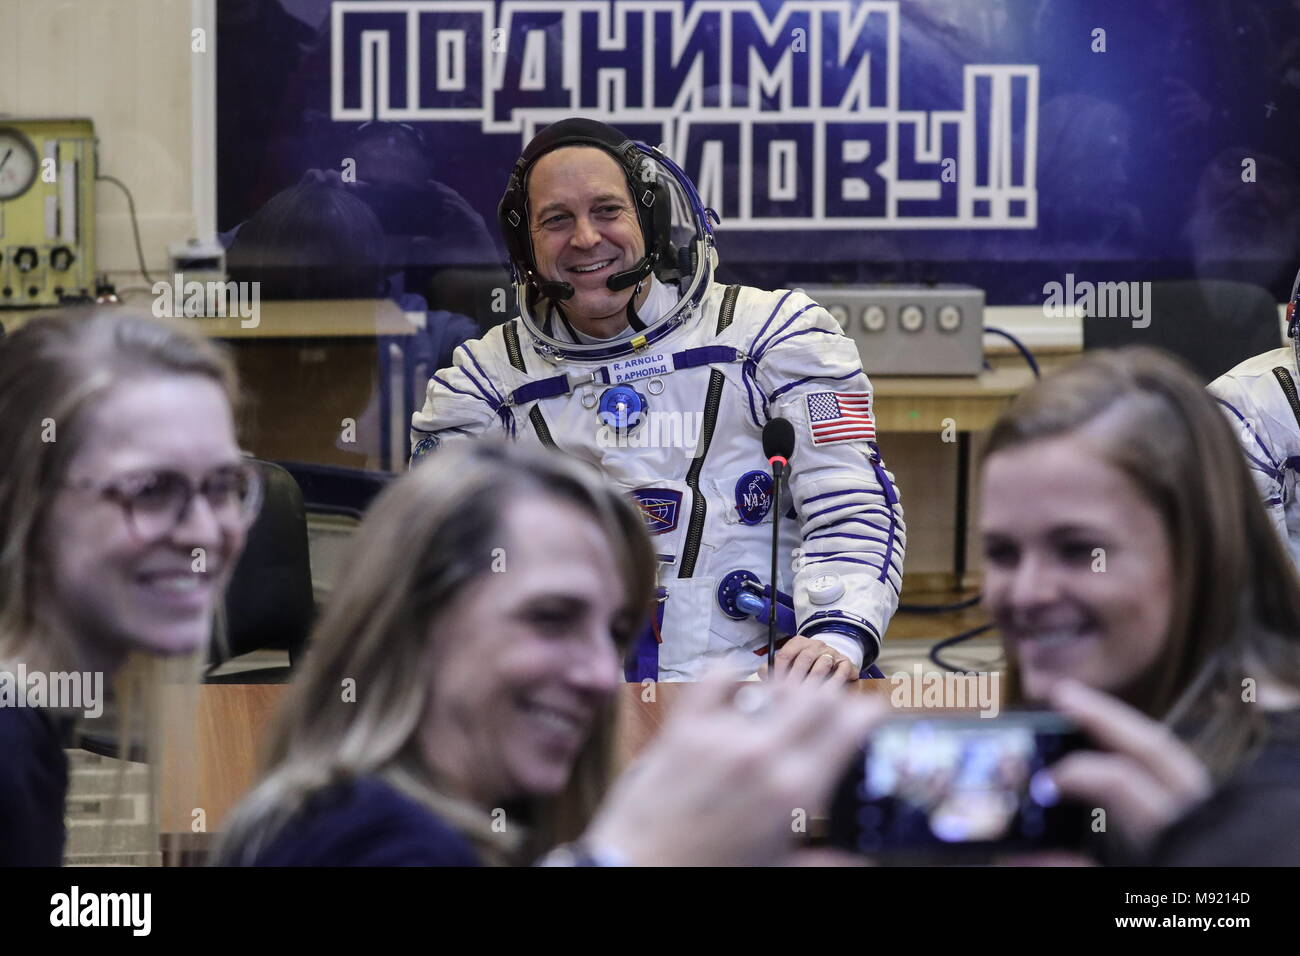 Baikonur Cosmodrome, Kazakhstan. 21st Mar, 2018. BAIKONUR, KAZAKHSTAN - MARCH 21, 2018: ISS Expedition 55/56 main crew member, NASA astronaut Richard Arnold, poses for a photo with his family through a safety glass before a launch to the International Space Station. The launch of a Soyuz-FG rocket booster carrying the Soyuz MS-08 spacecraft to the ISS from the Baikonur Cosmodrome is scheduled for March 21, 2018 at 20:44 Moscow time. Sergei Savostyanov/TASS Credit: ITAR-TASS News Agency/Alamy Live News - Stock Image